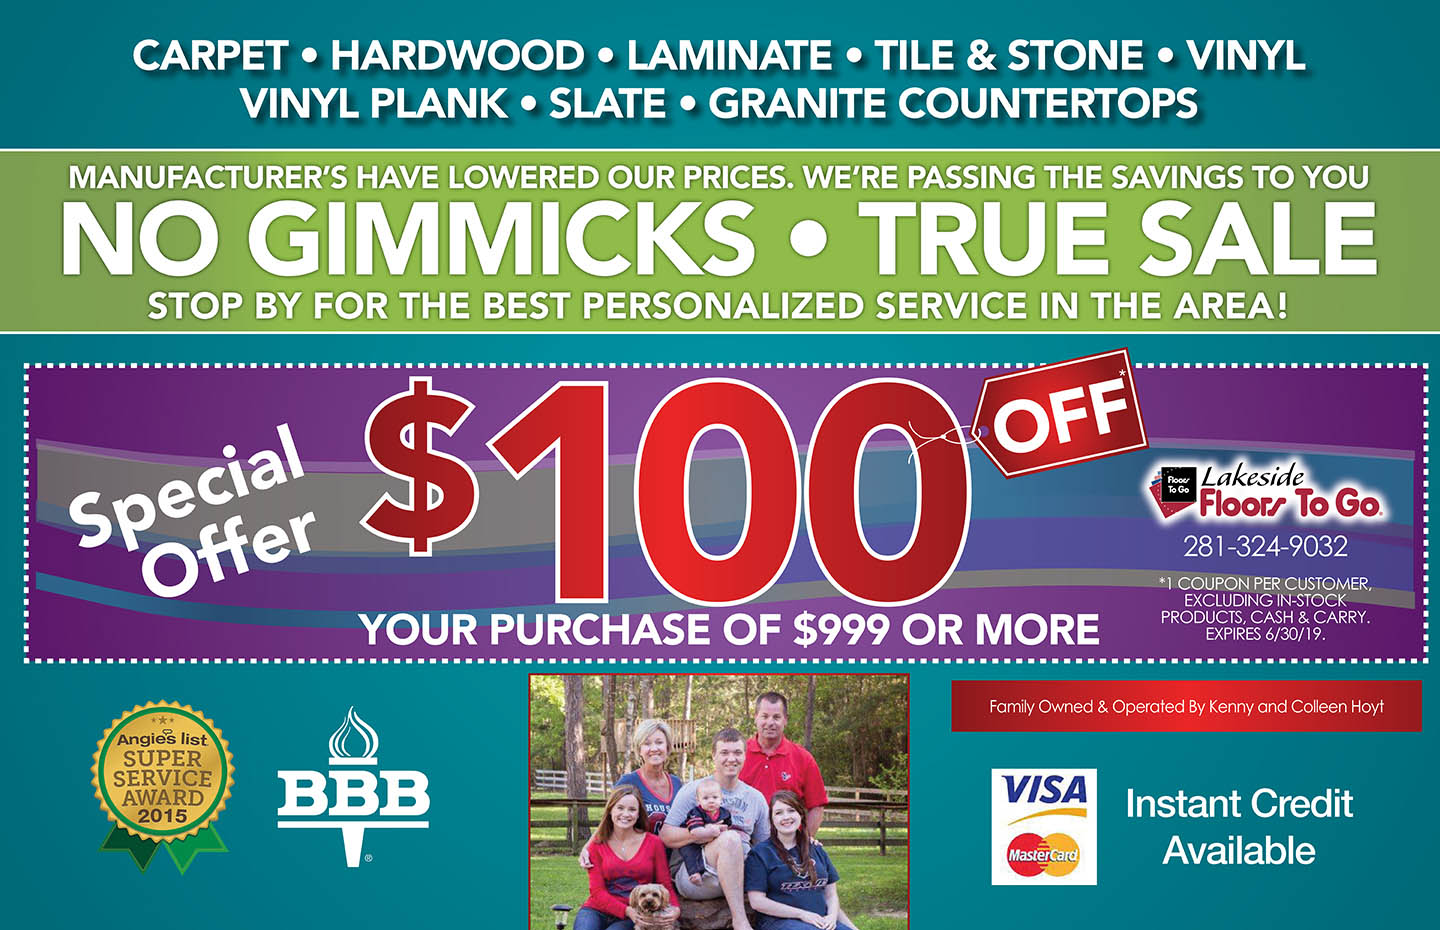 $100 off your purchase of $999 or more!  1 coupon per customer, excluding in-stock products, cash & carry.  Expires 6/30/19